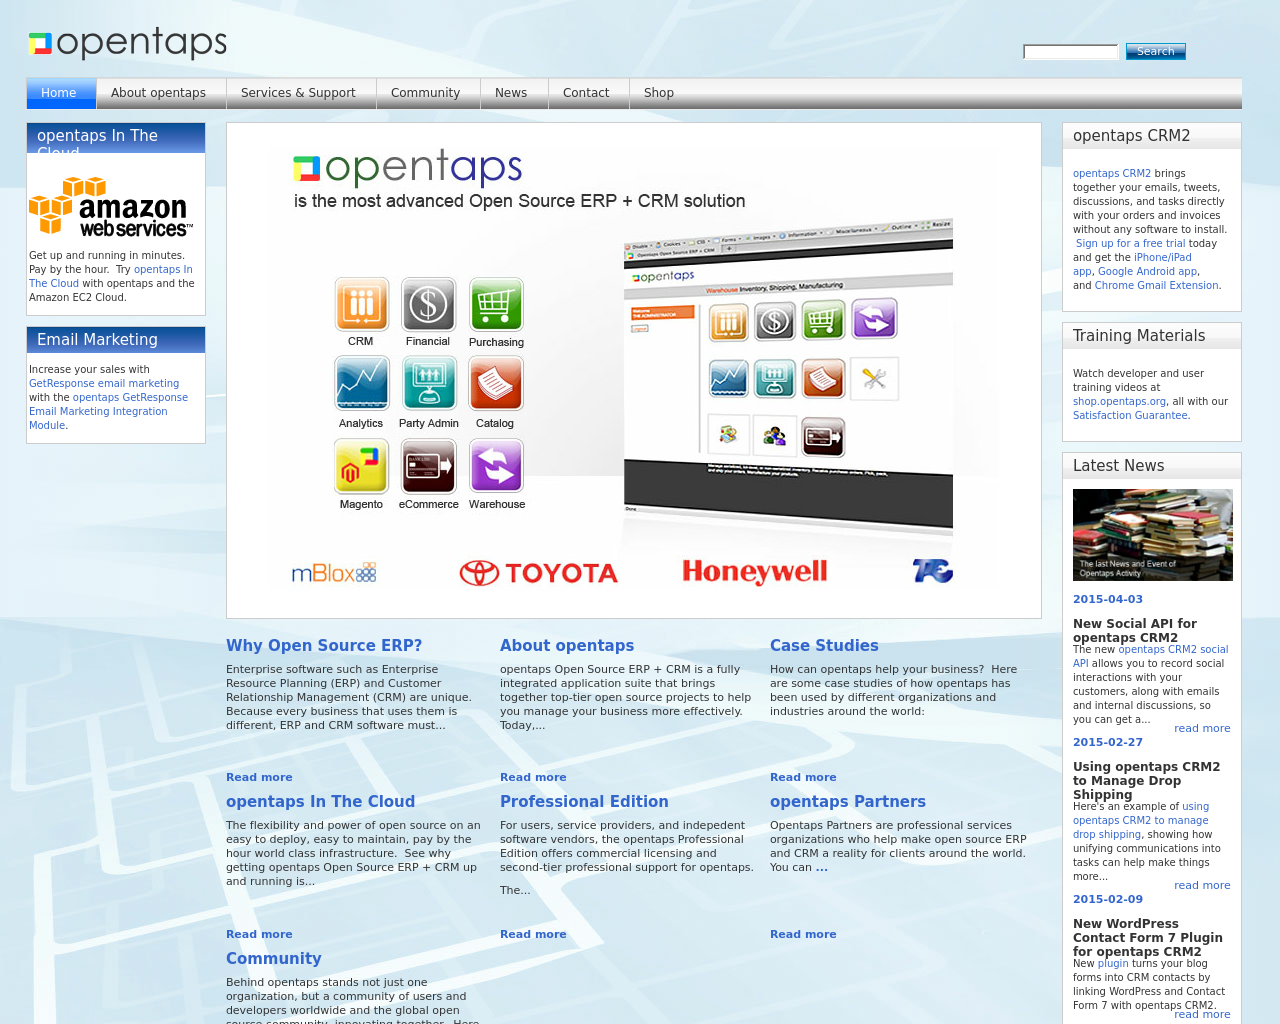 Opentaps-Advertising-Reviews-Pricing